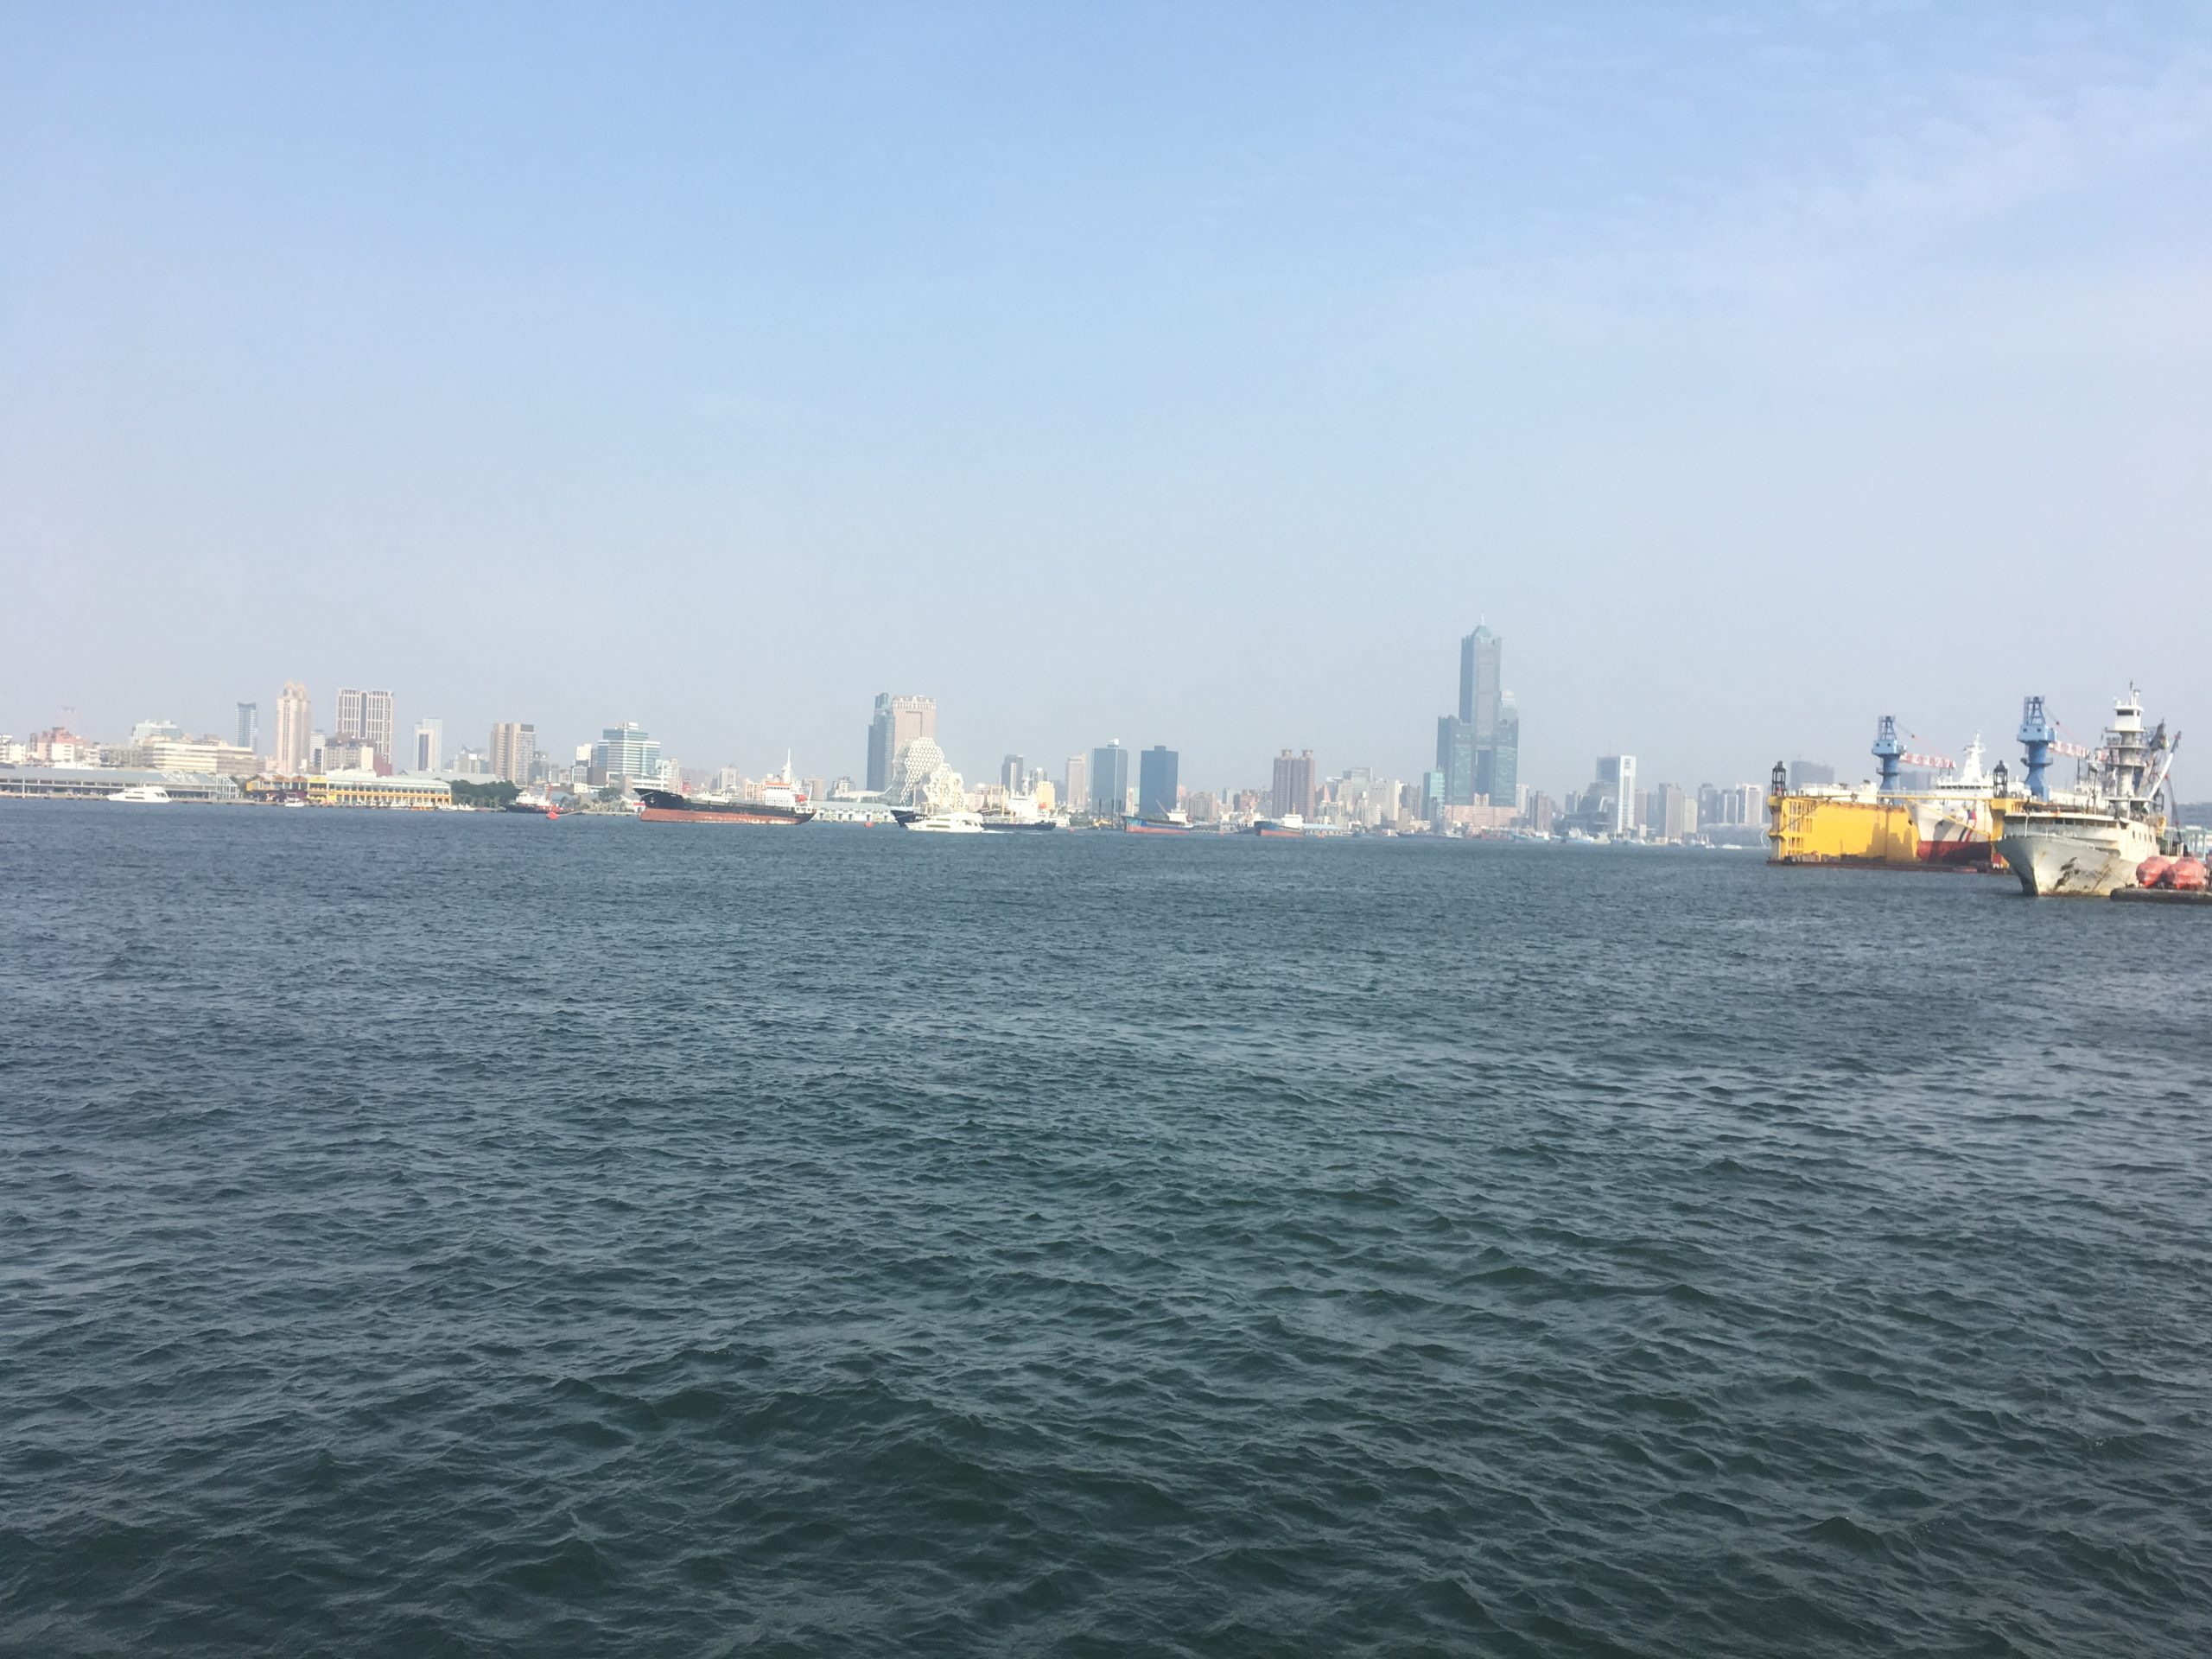 Kaohsiung Harbour from Cijin ferry